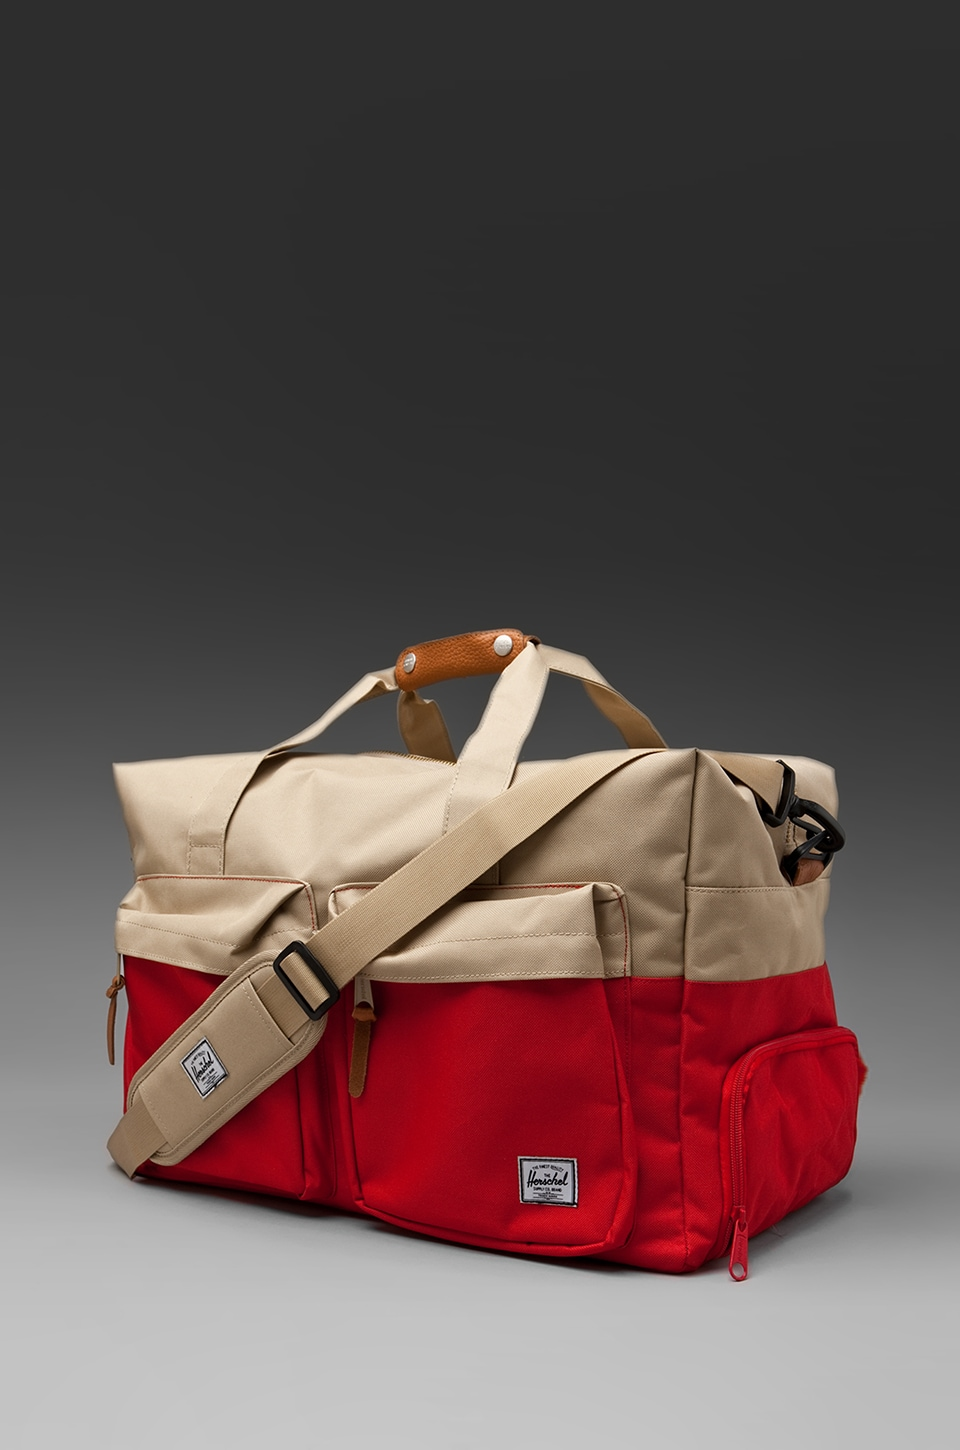 Herschel Supply Co. Walton Duffle Bag in Red/Khaki